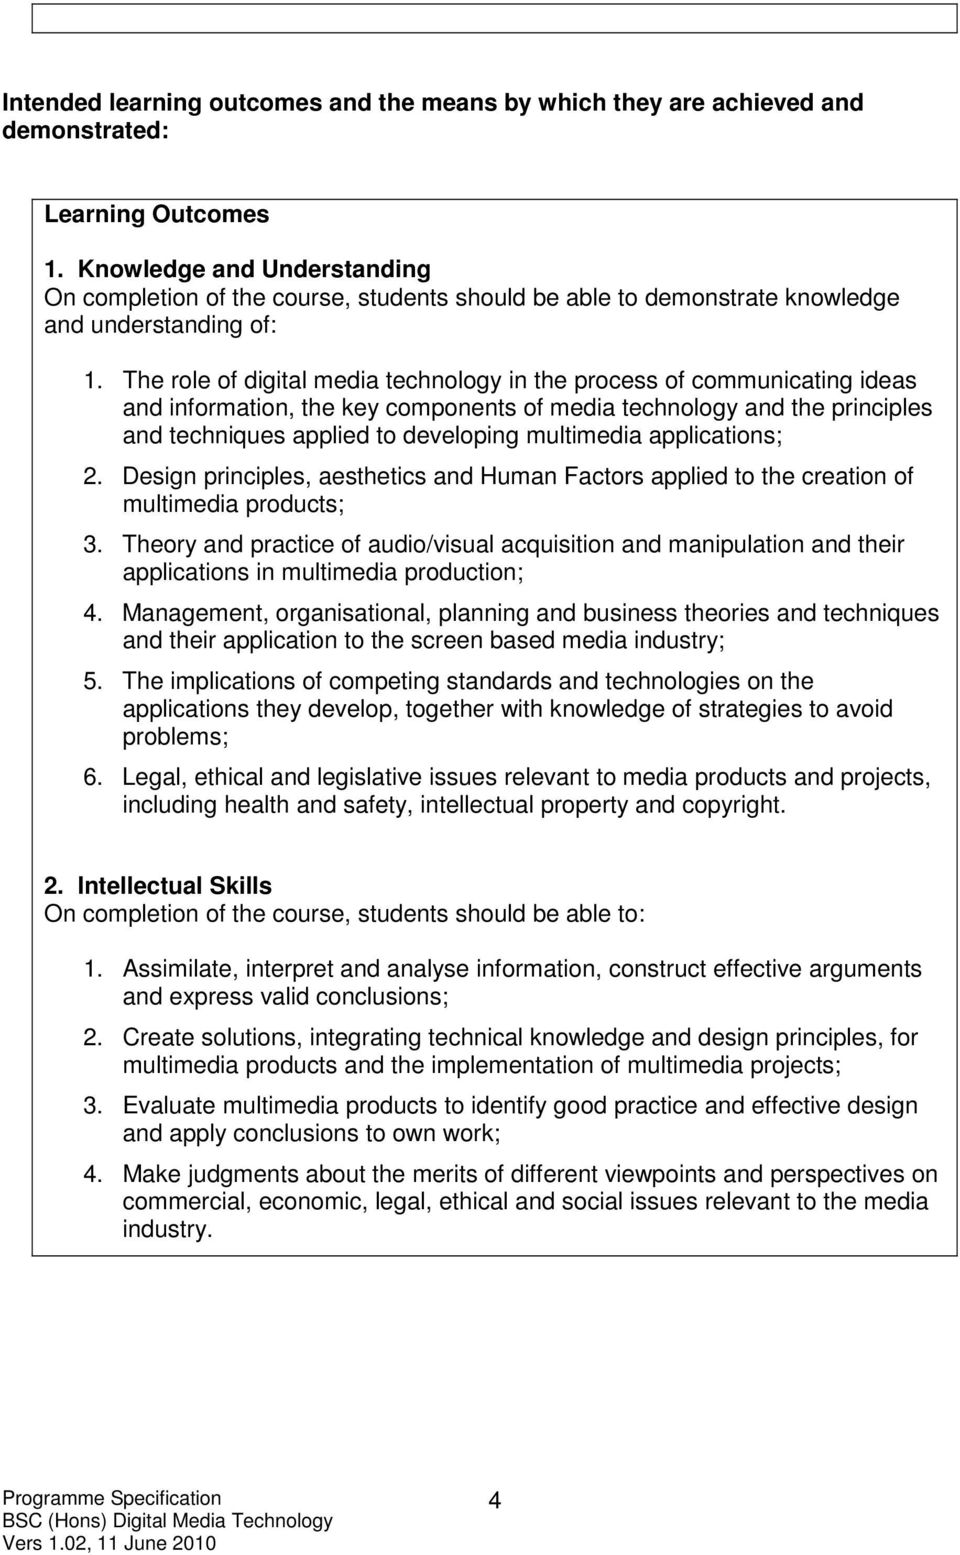 The role of digital media technology in the process of communicating ideas and information, the key components of media technology and the principles and techniques applied to developing multimedia